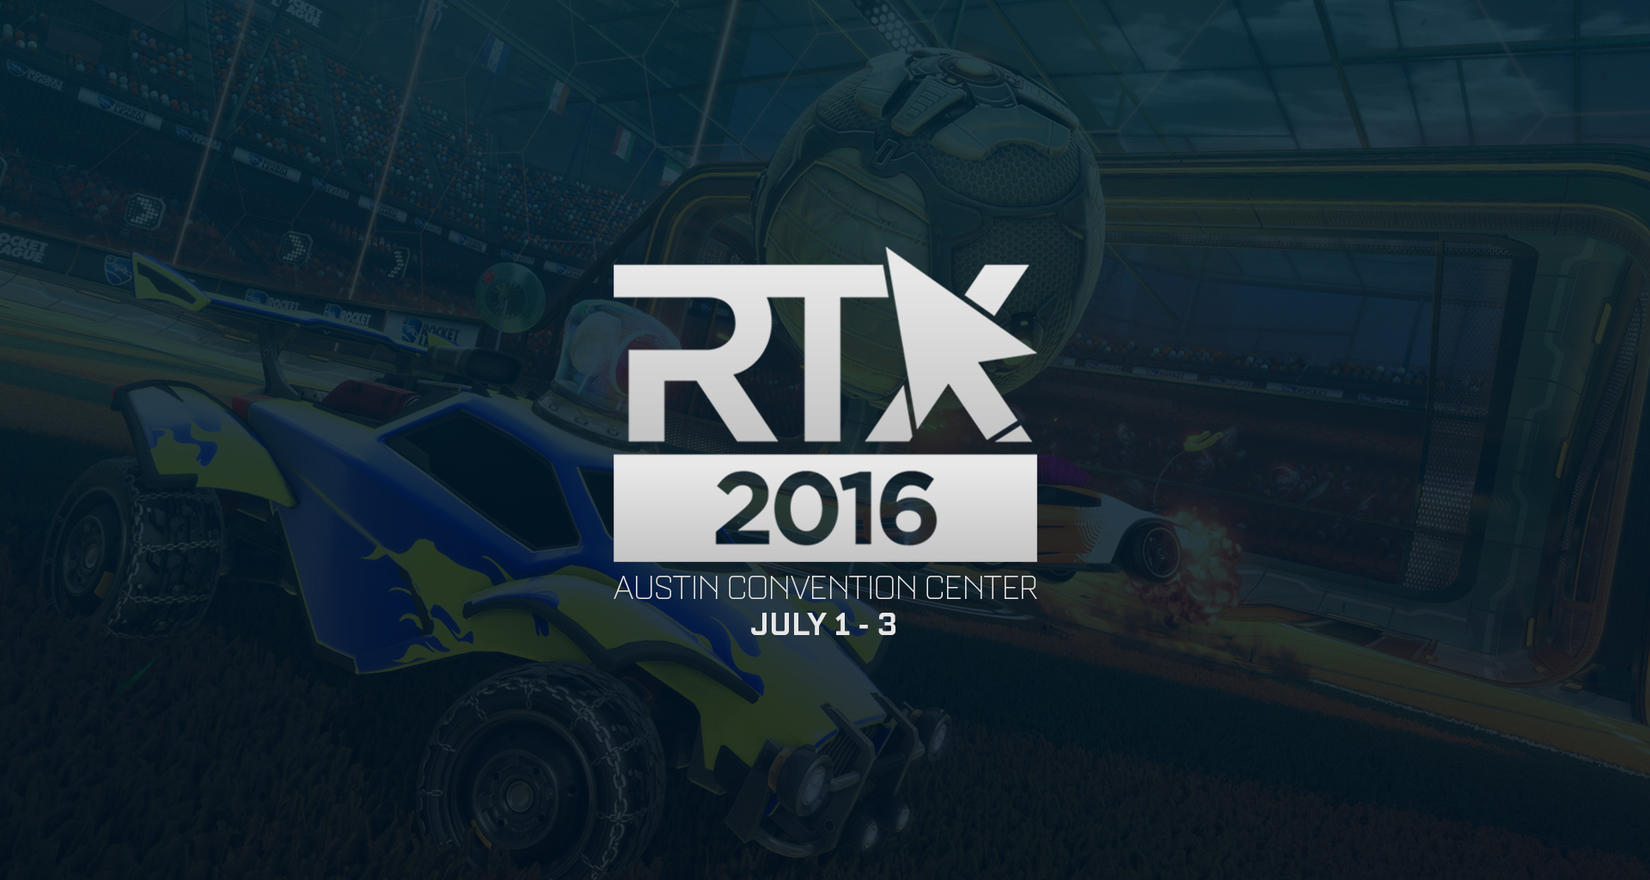 Rocket League at RTX This Weekend Image